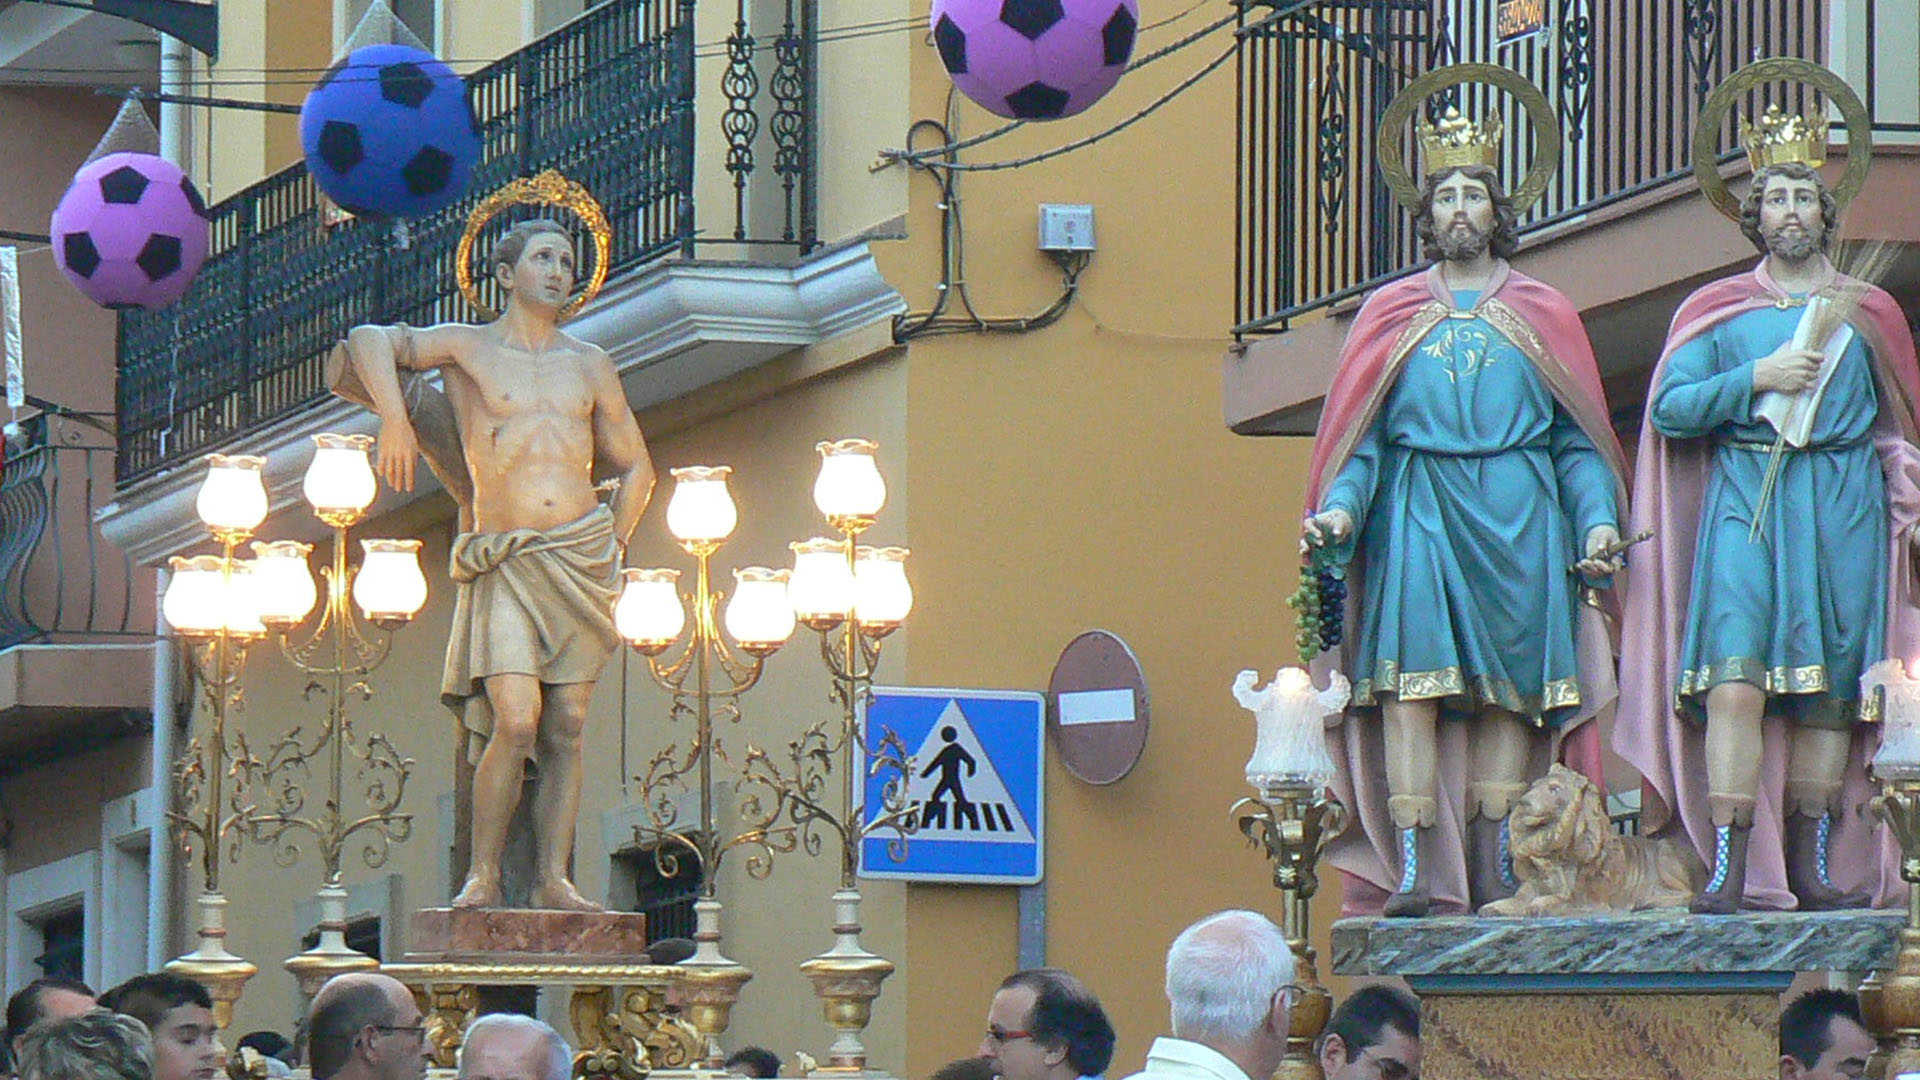 FESTIVITIES IN HONOUR OF SAN SEBASTIÁN, CRISTO DEL CONSUELO AND LA PURÍSIMA